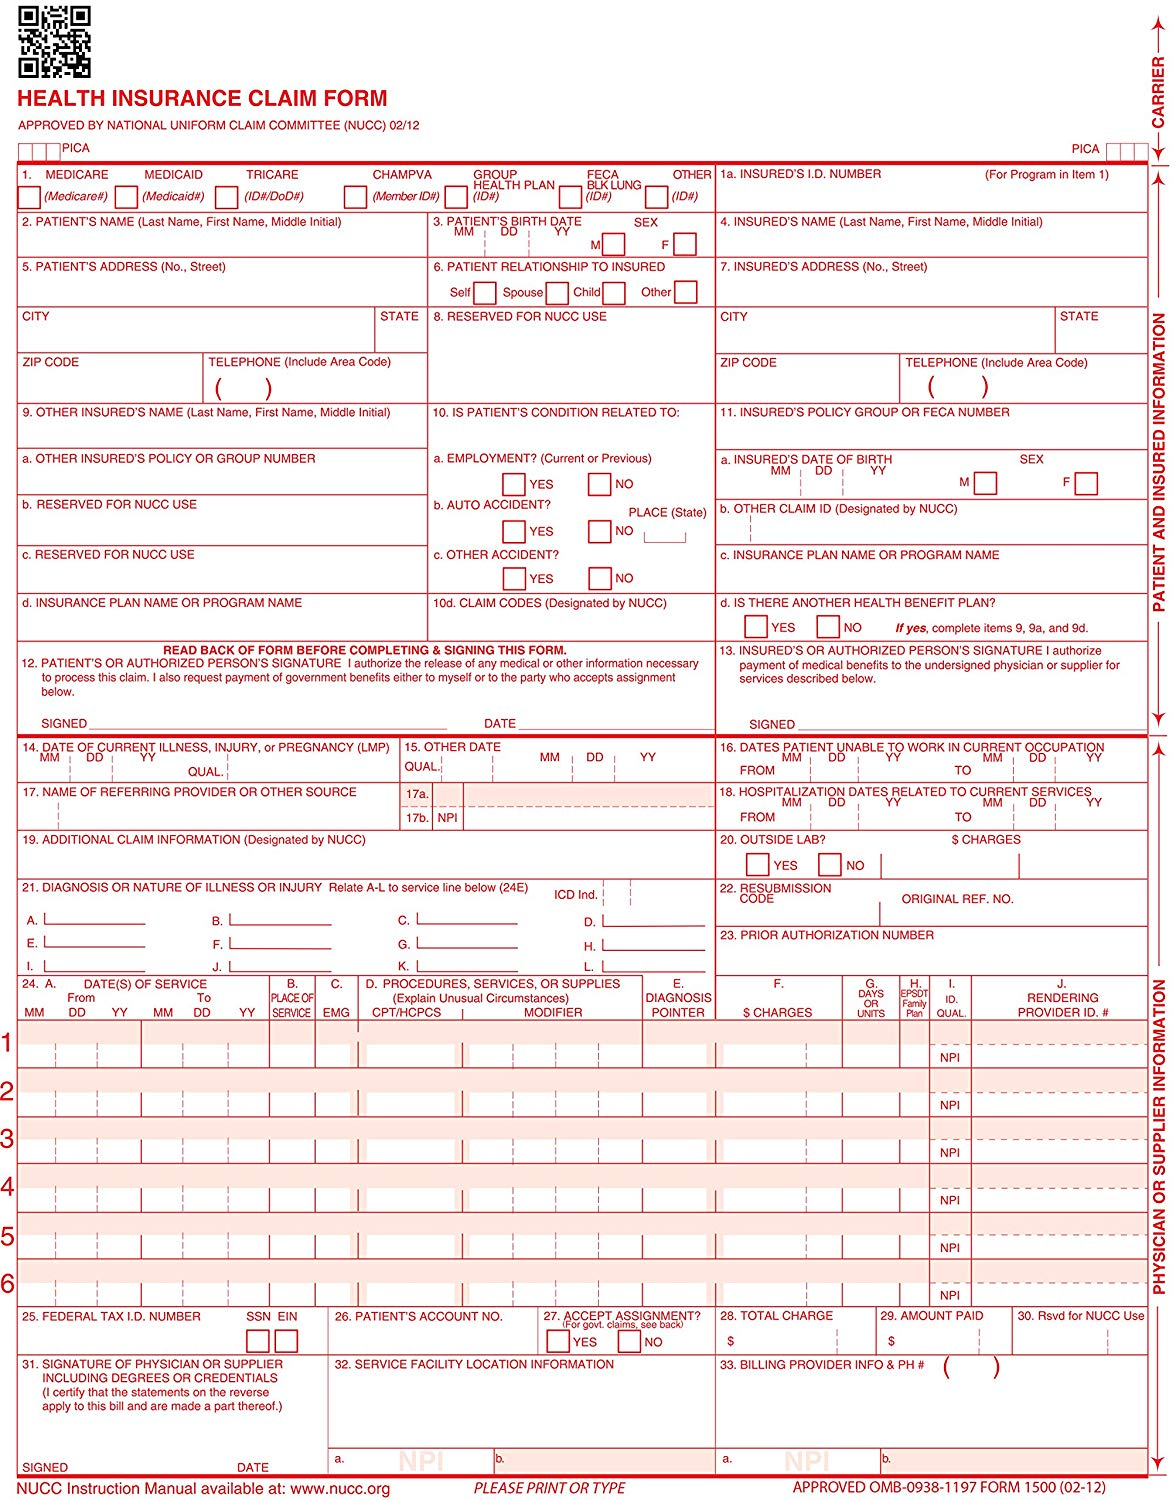 Where To Order Cms 1500 Forms